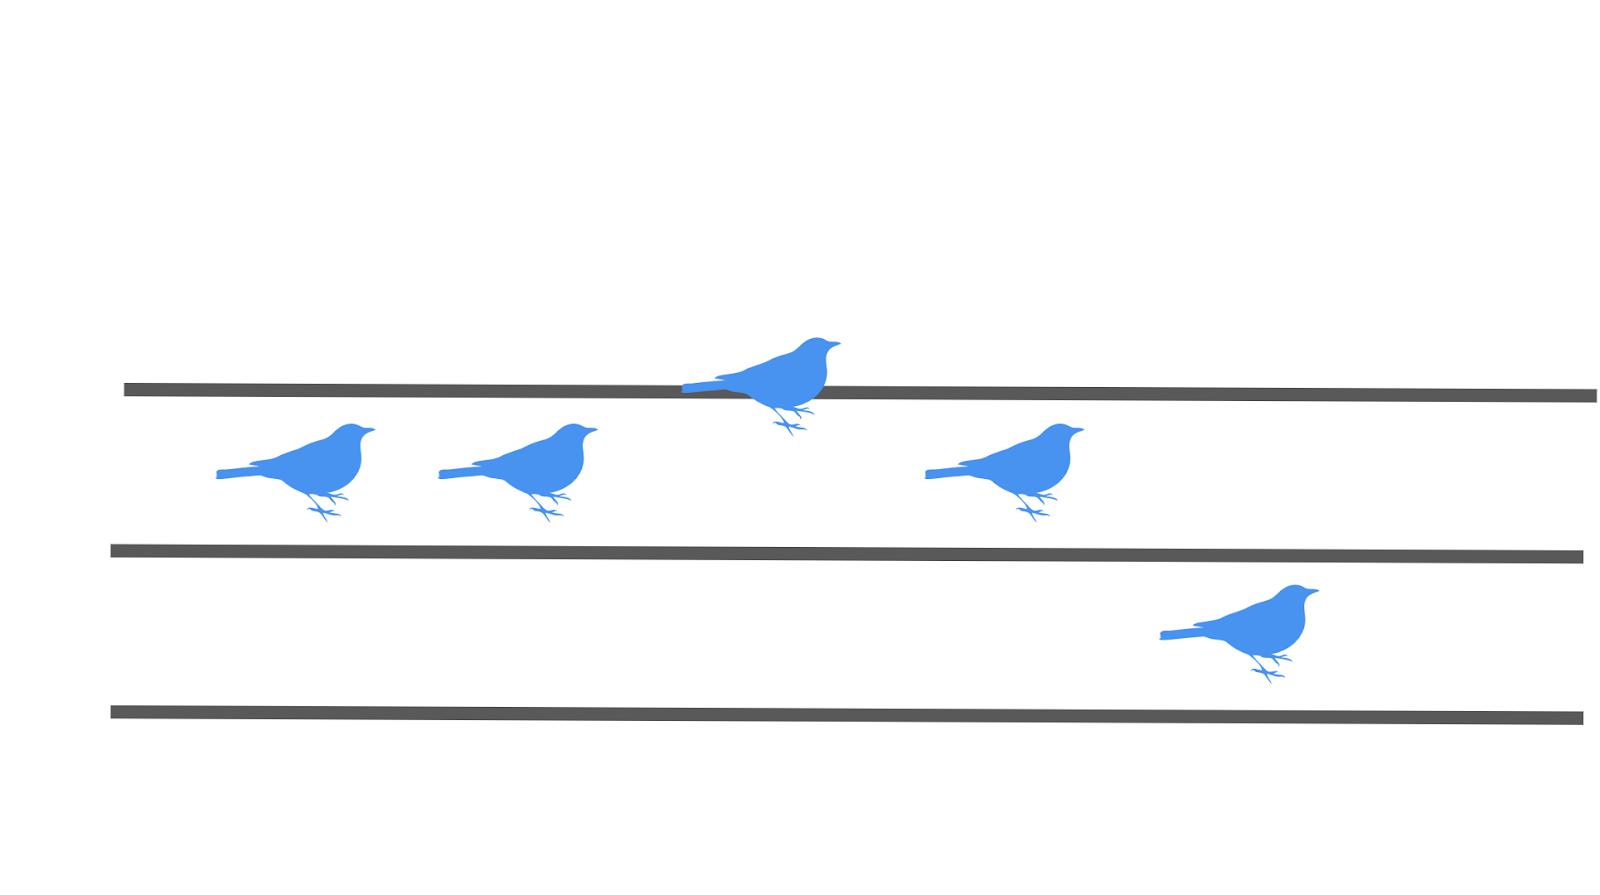 bluebird notation notes music